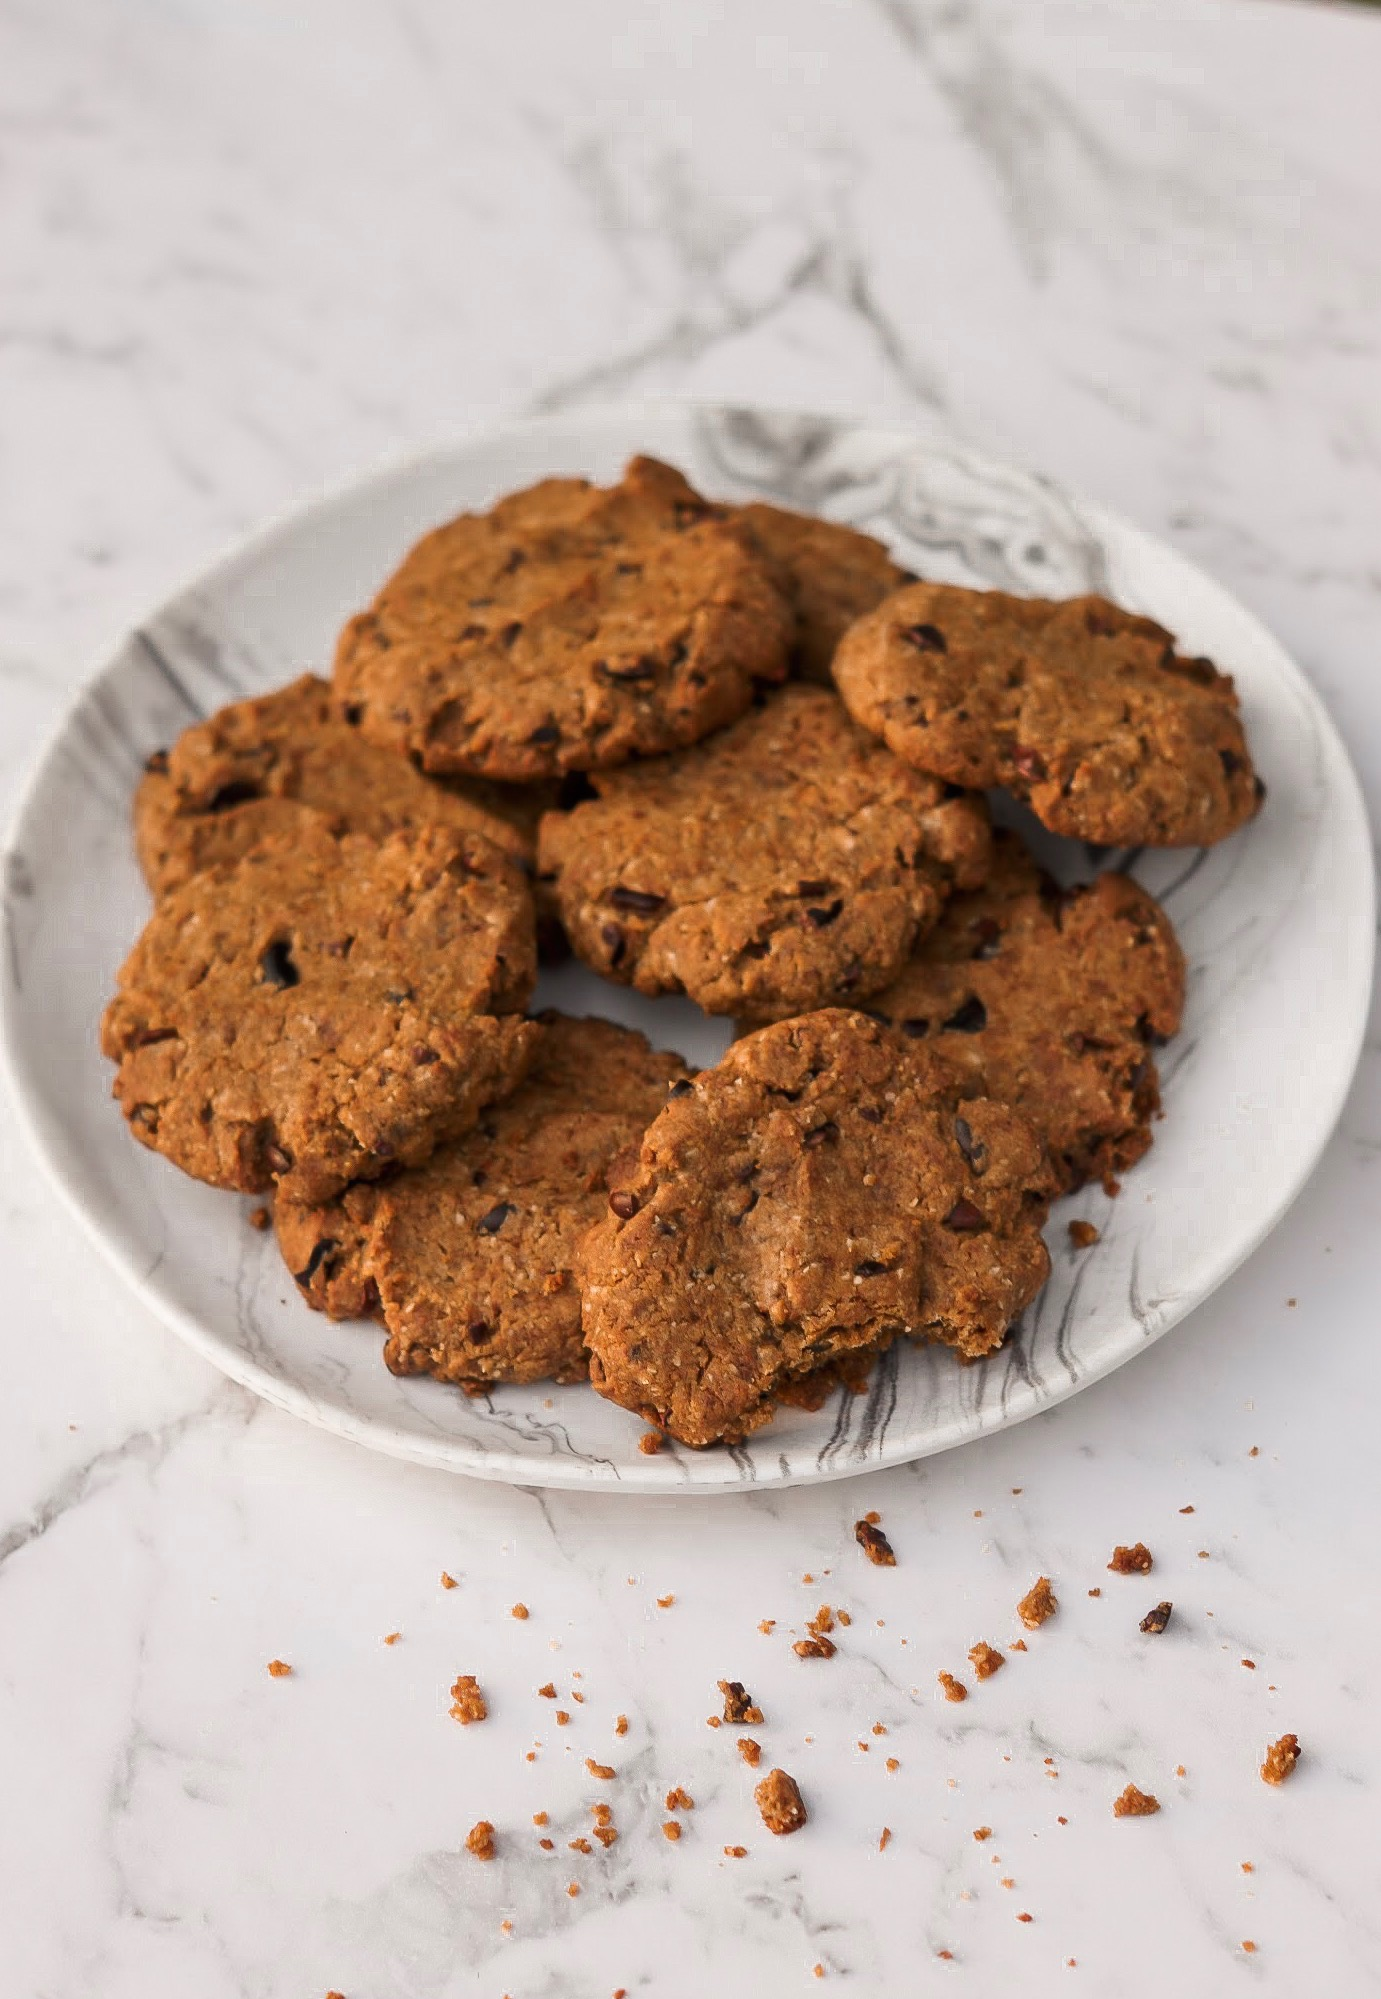 Recipe: Vegan, Nut-Free Buckwheat & Tahini Cookies